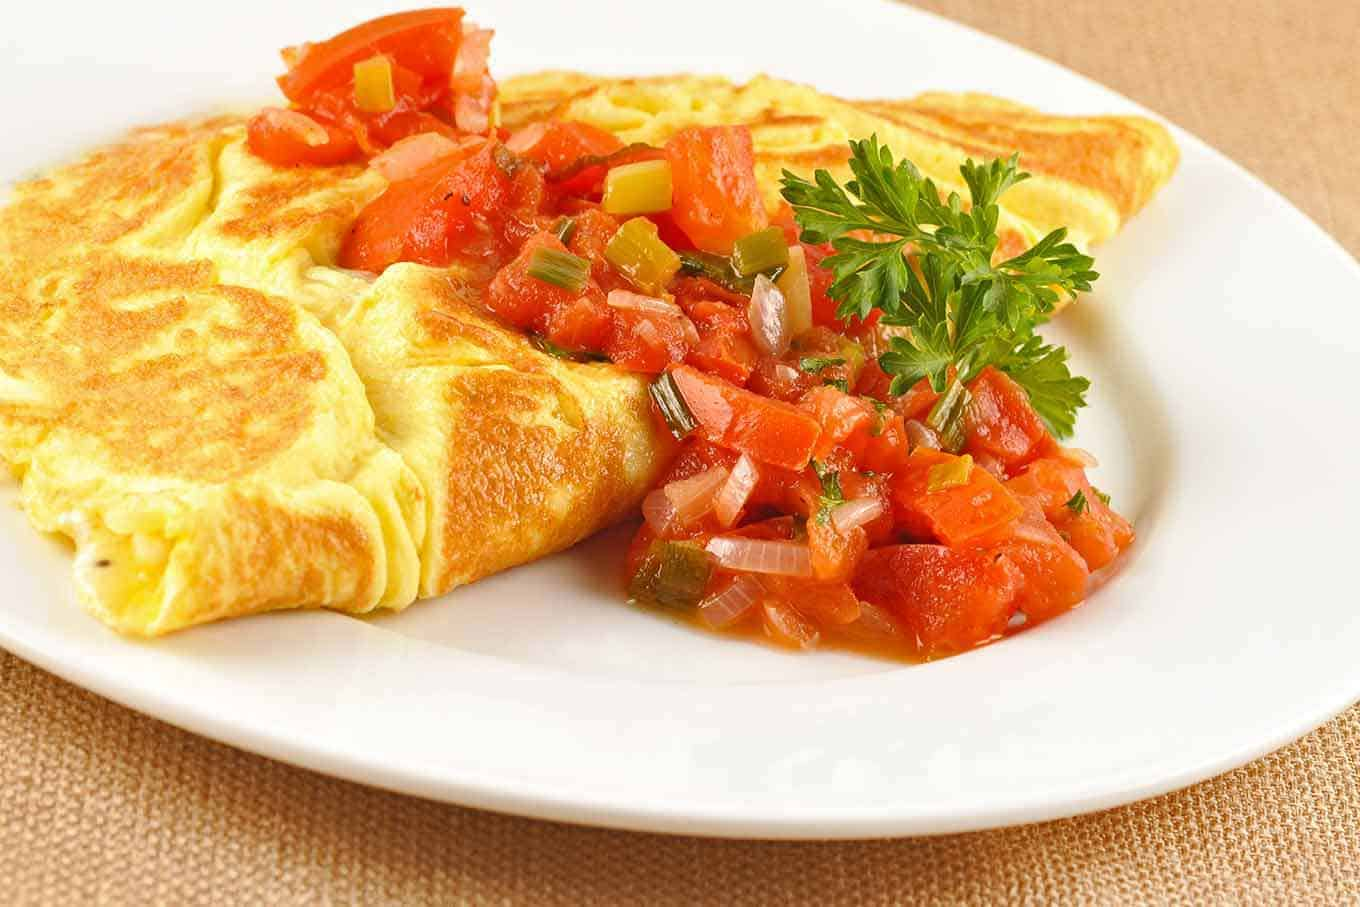 Cheese Filled Omelets Omelettes With Tomatoes And